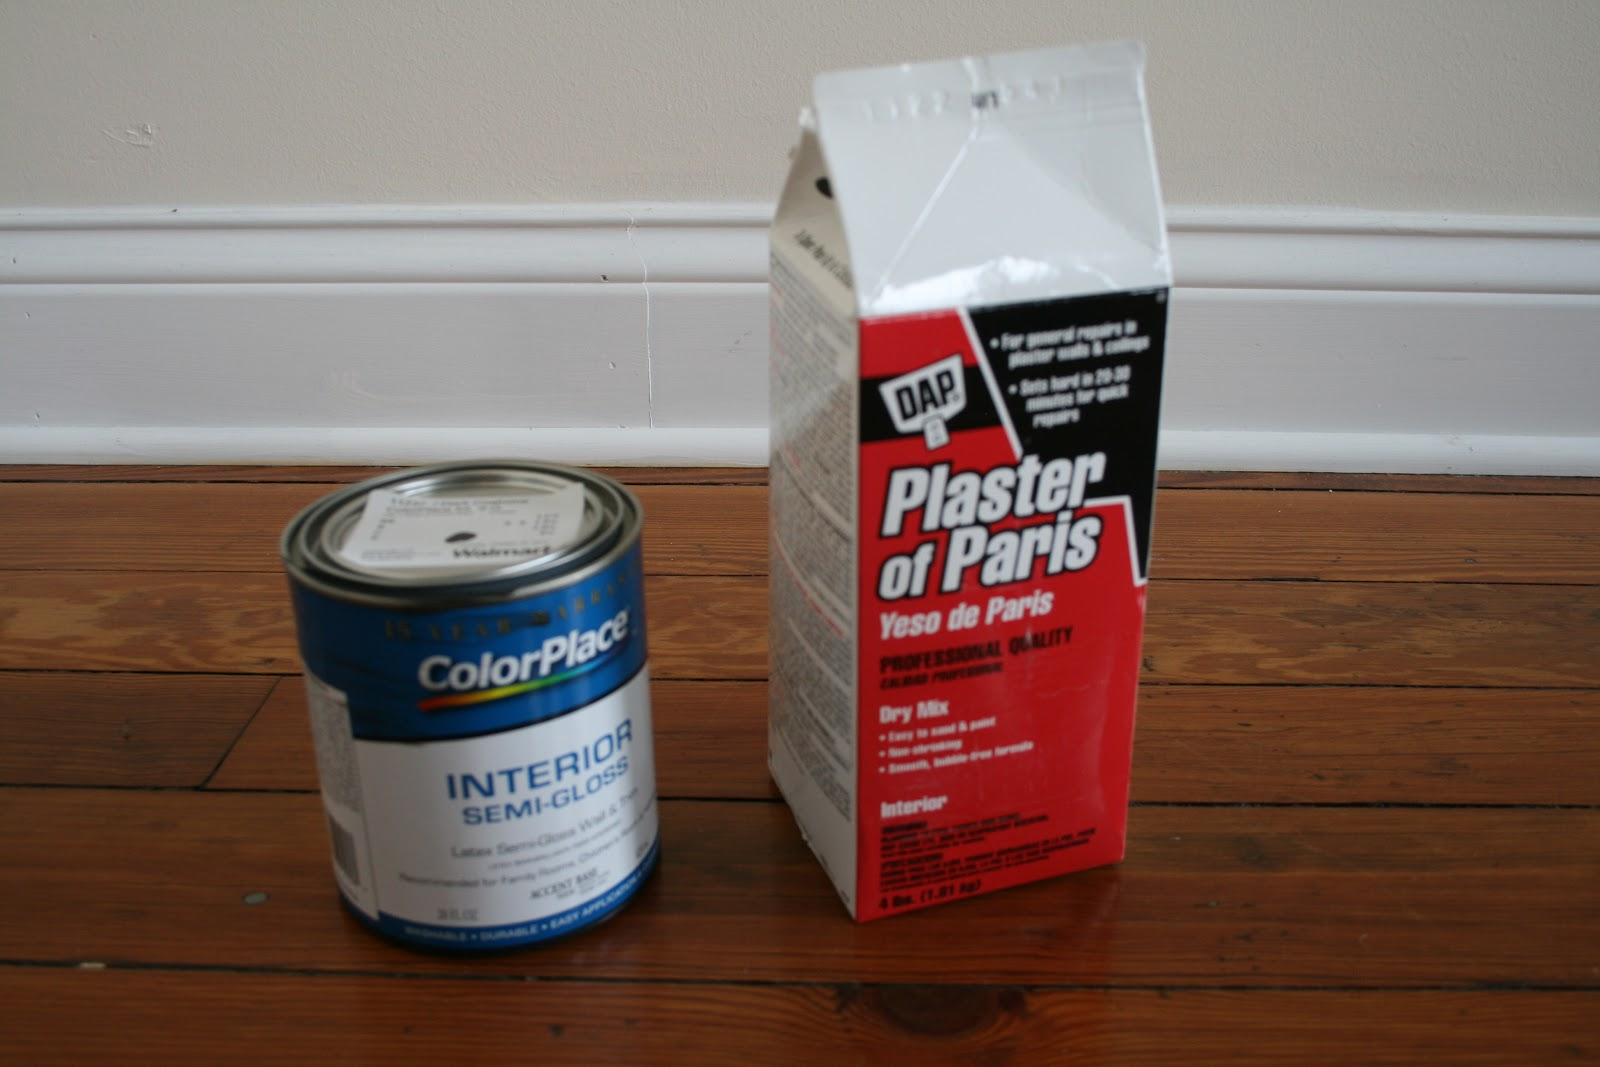 Home depot interior paint brands 28 images best interior paint brands paint brands at home Best indoor paint brand